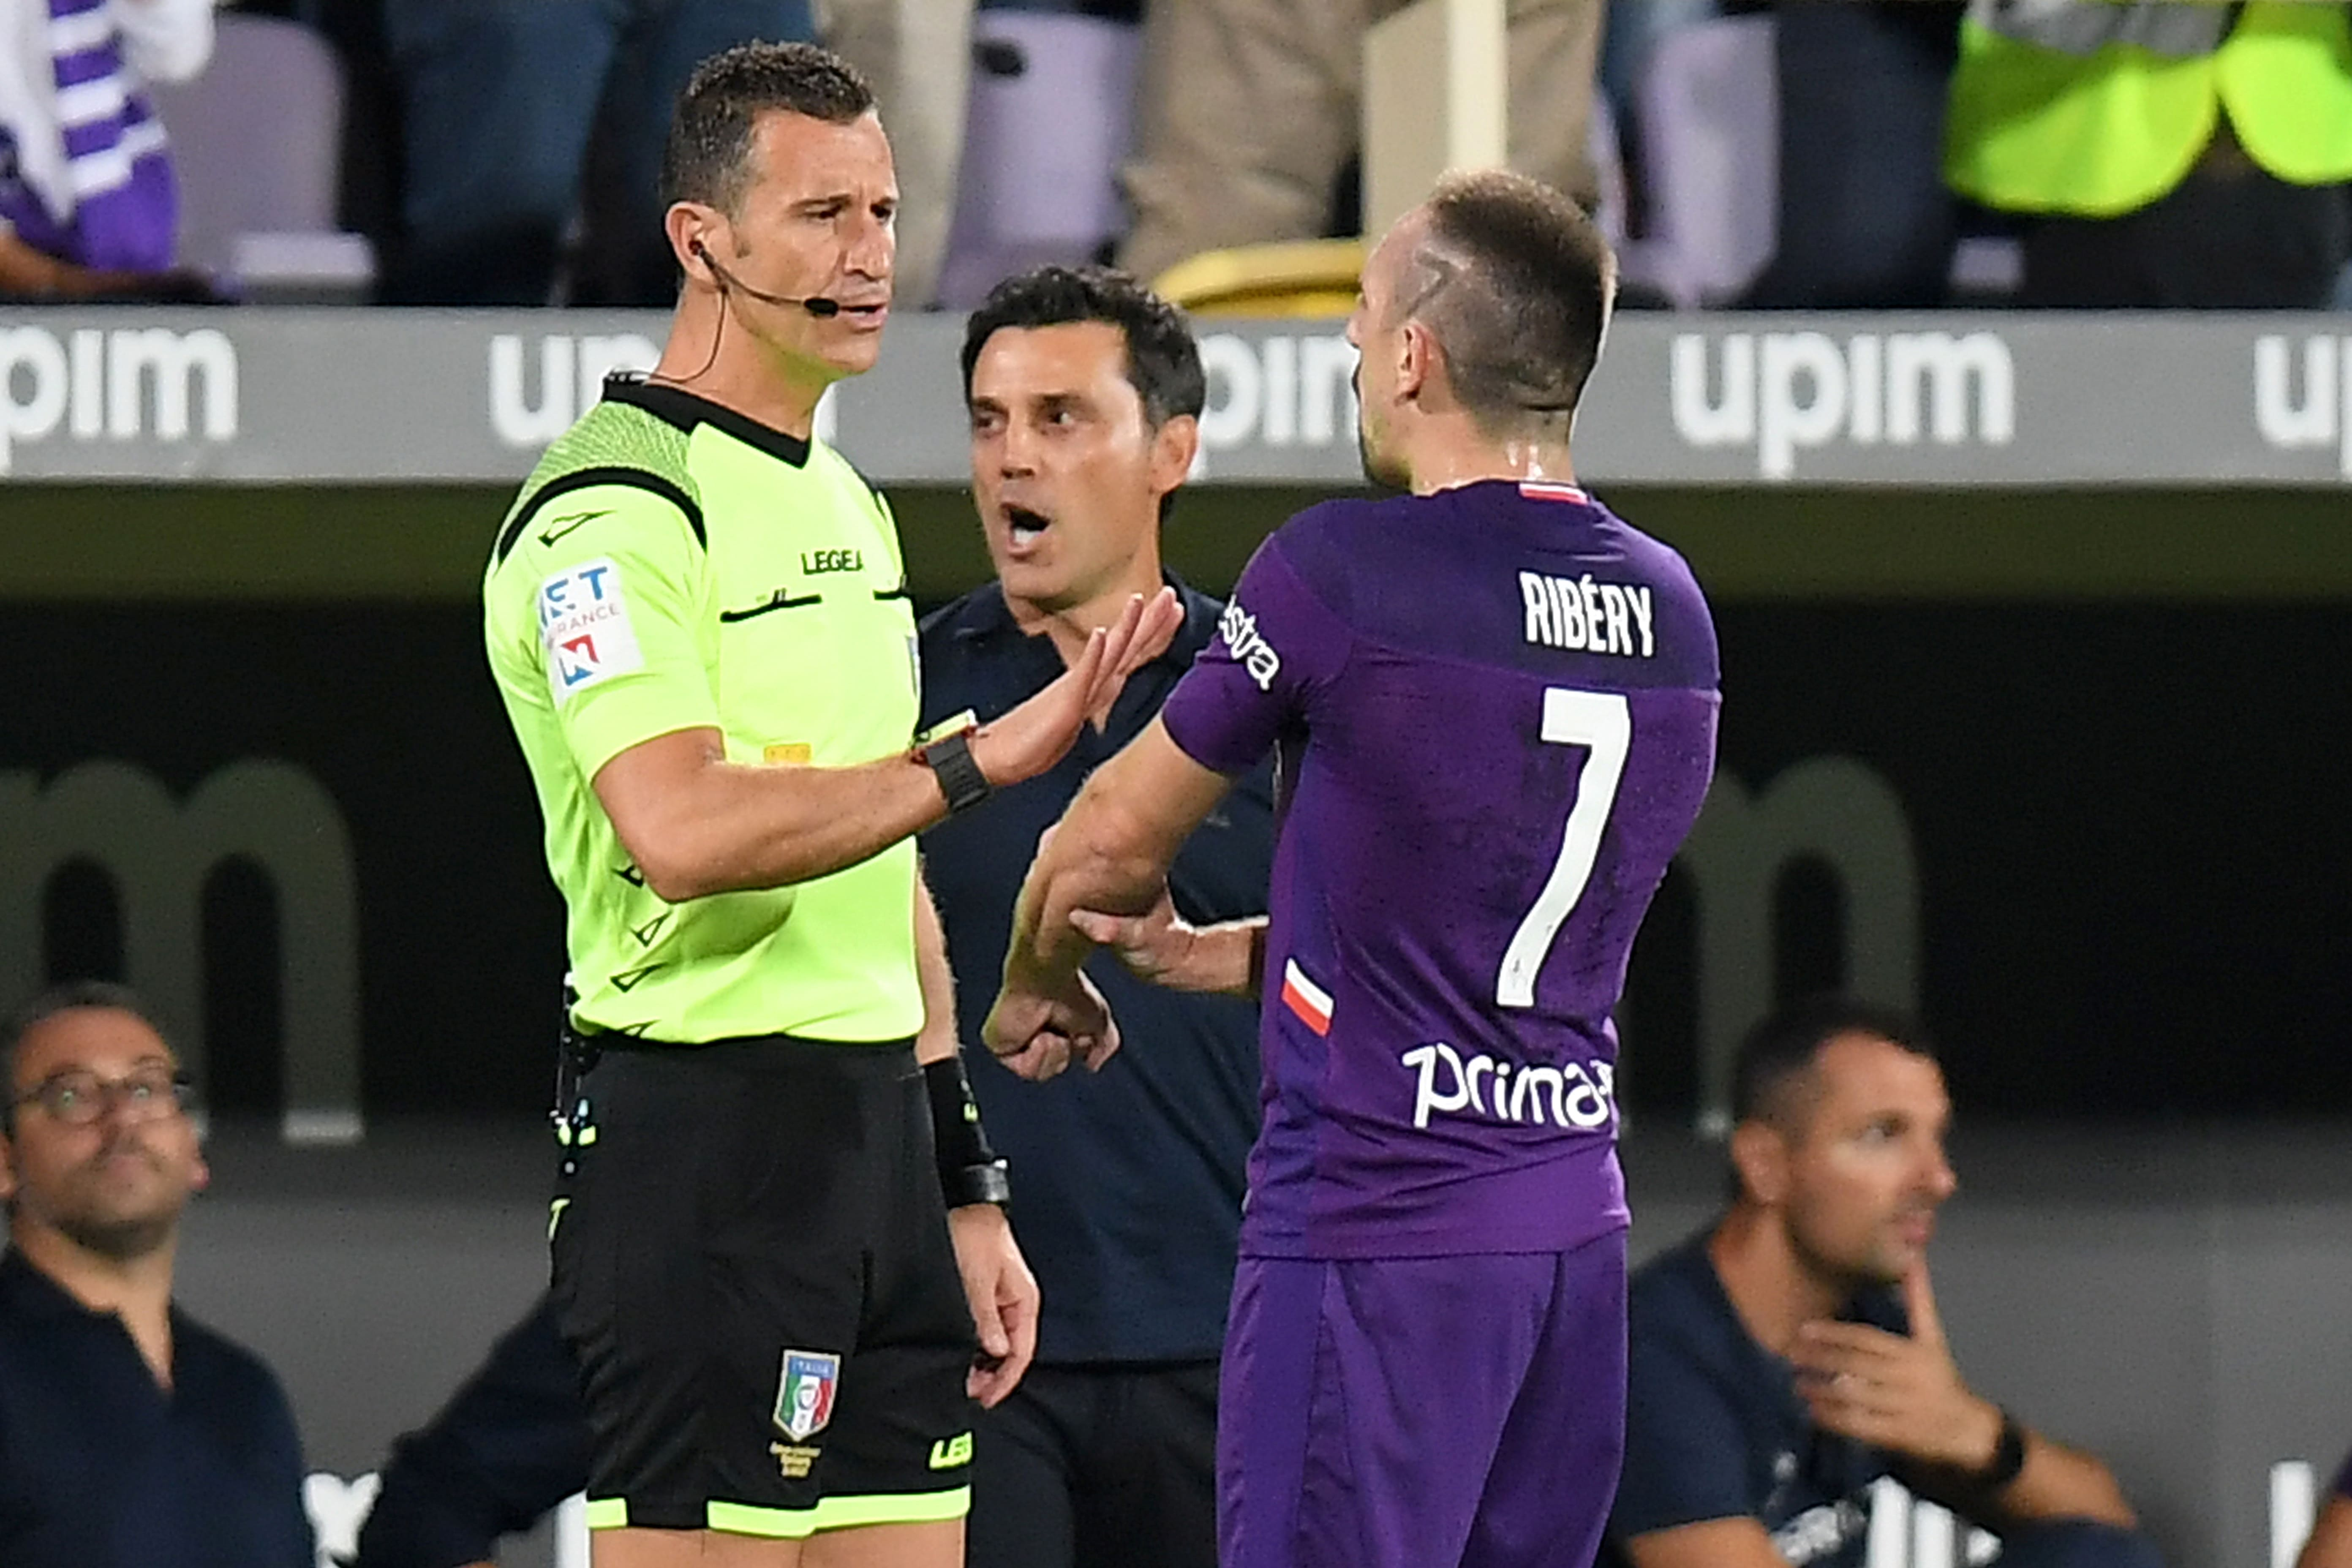 Fiorentina star Franck Ribery banned for three games after contact with referee